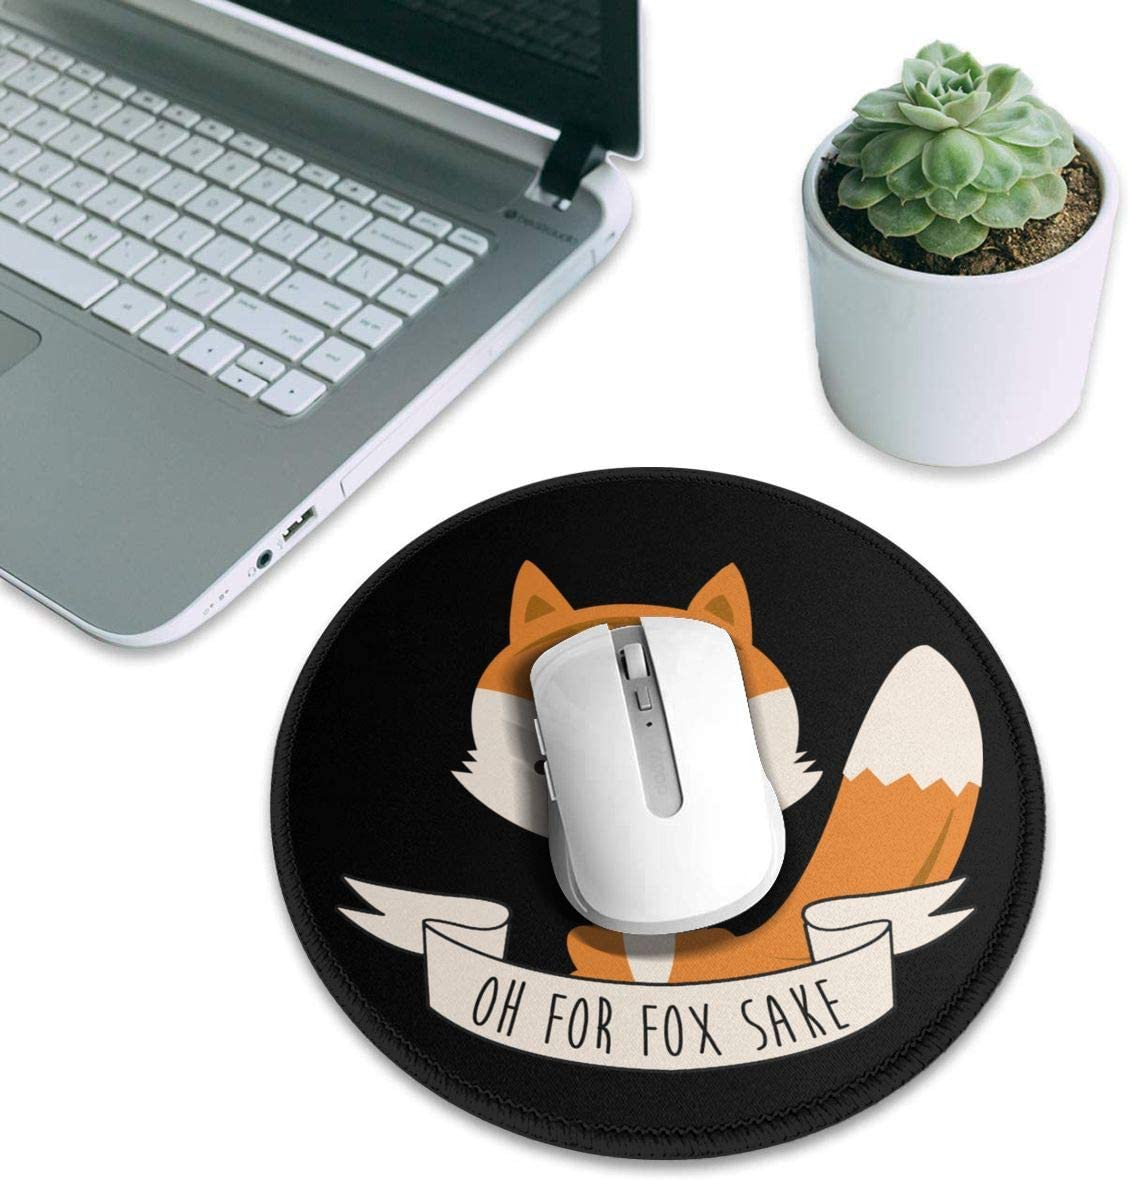 Laptop Office /& Home 7.9x7.9 in 1 PCS OH Fox Sake Round Non Slip Gaming Mouse Pad for Computers